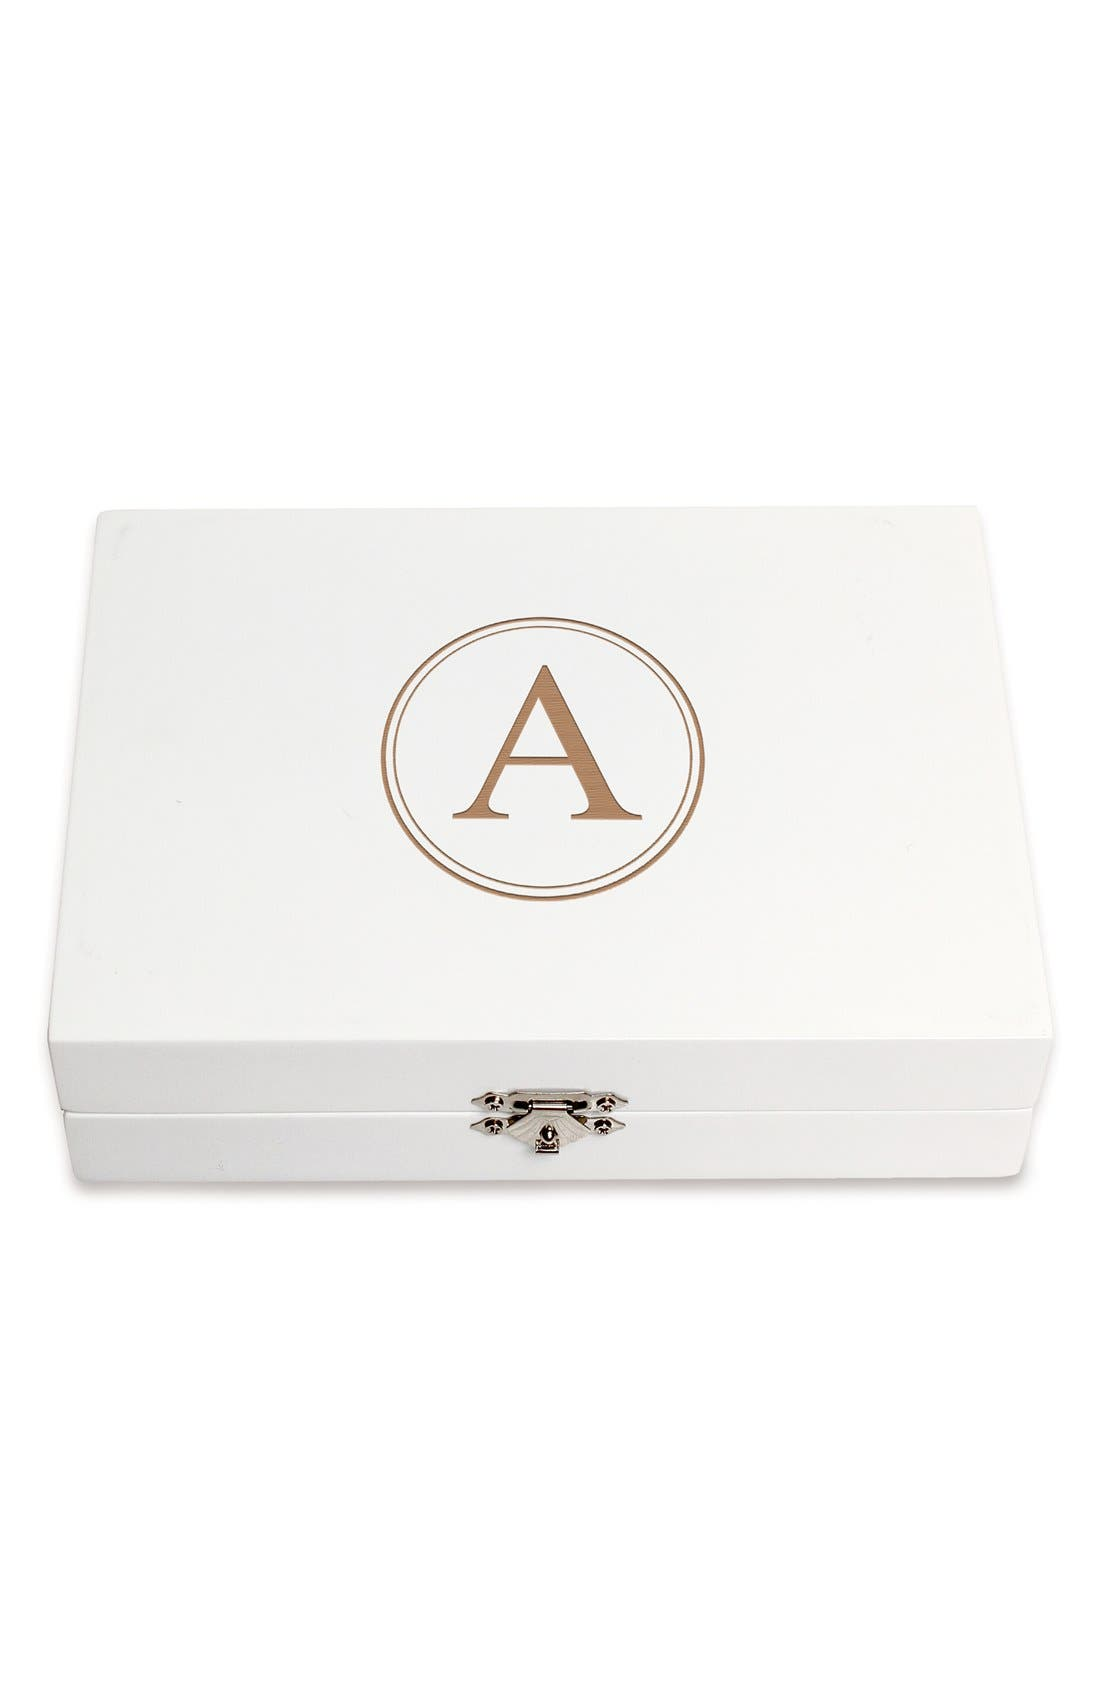 Cathy's Concepts Monogram Wooden Jewelry Box